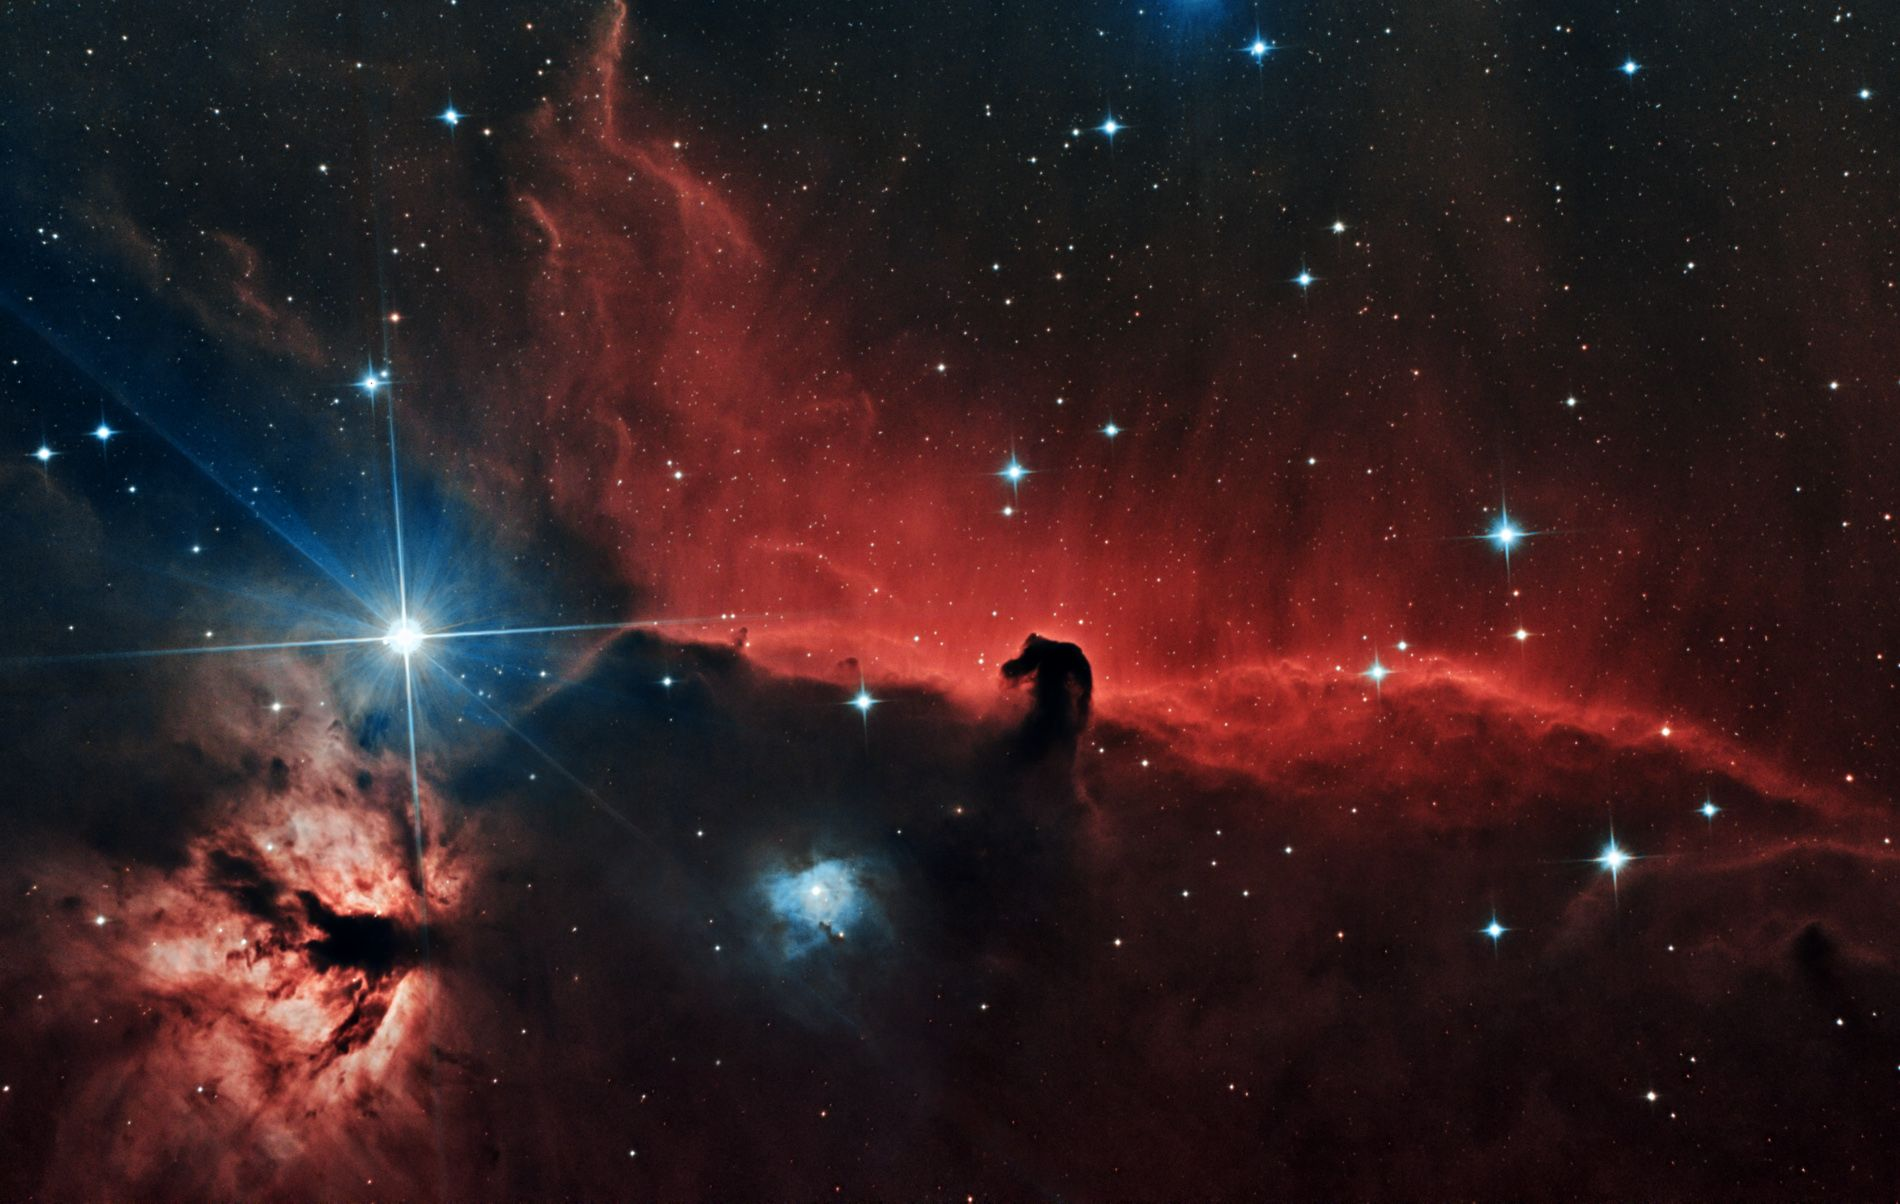 Horsehead Nebula | Astronomy Pictures at Orion Telescopes